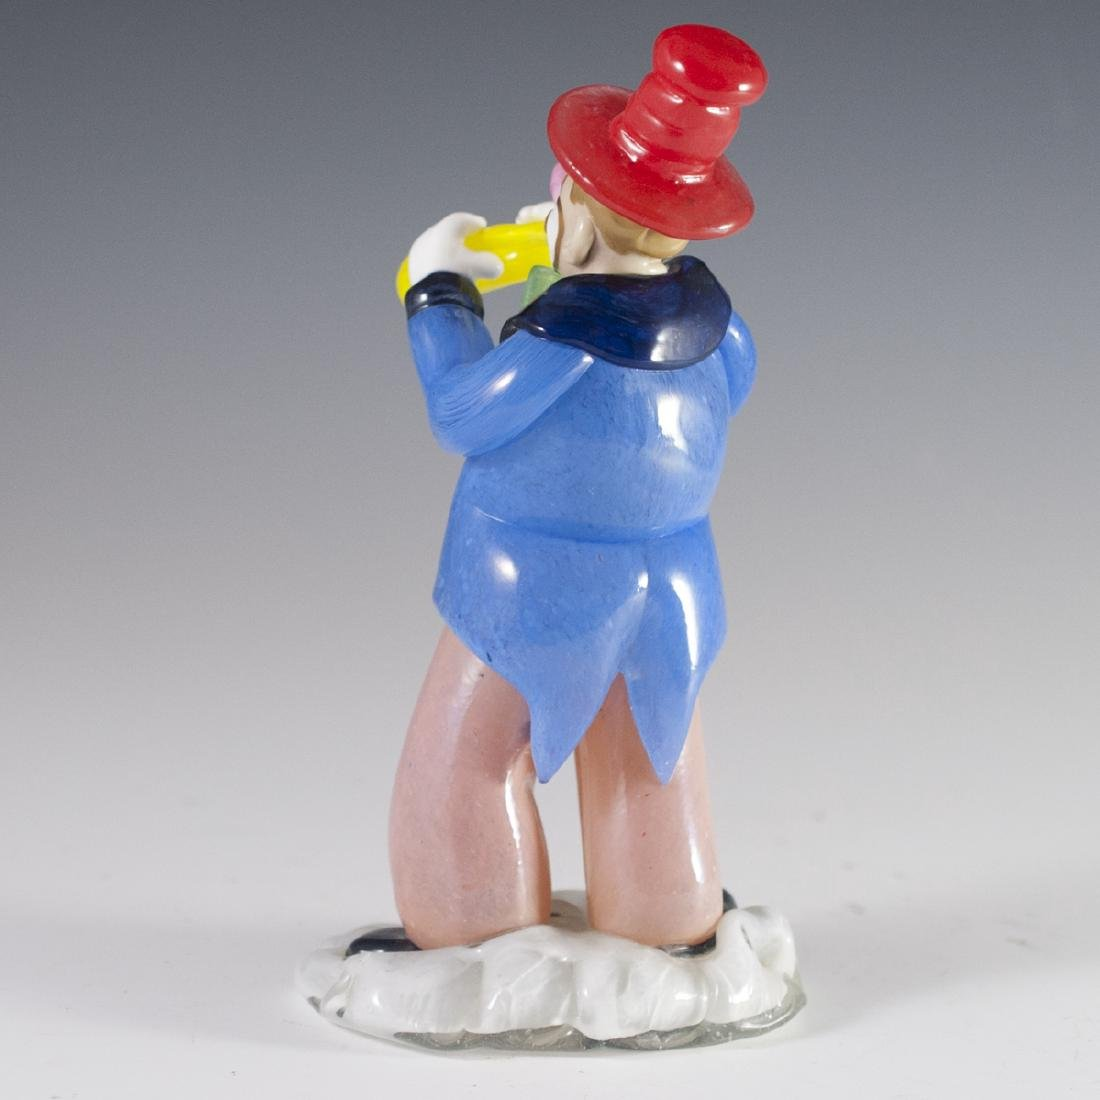 Bohemian Glass Clown Figurine - 2